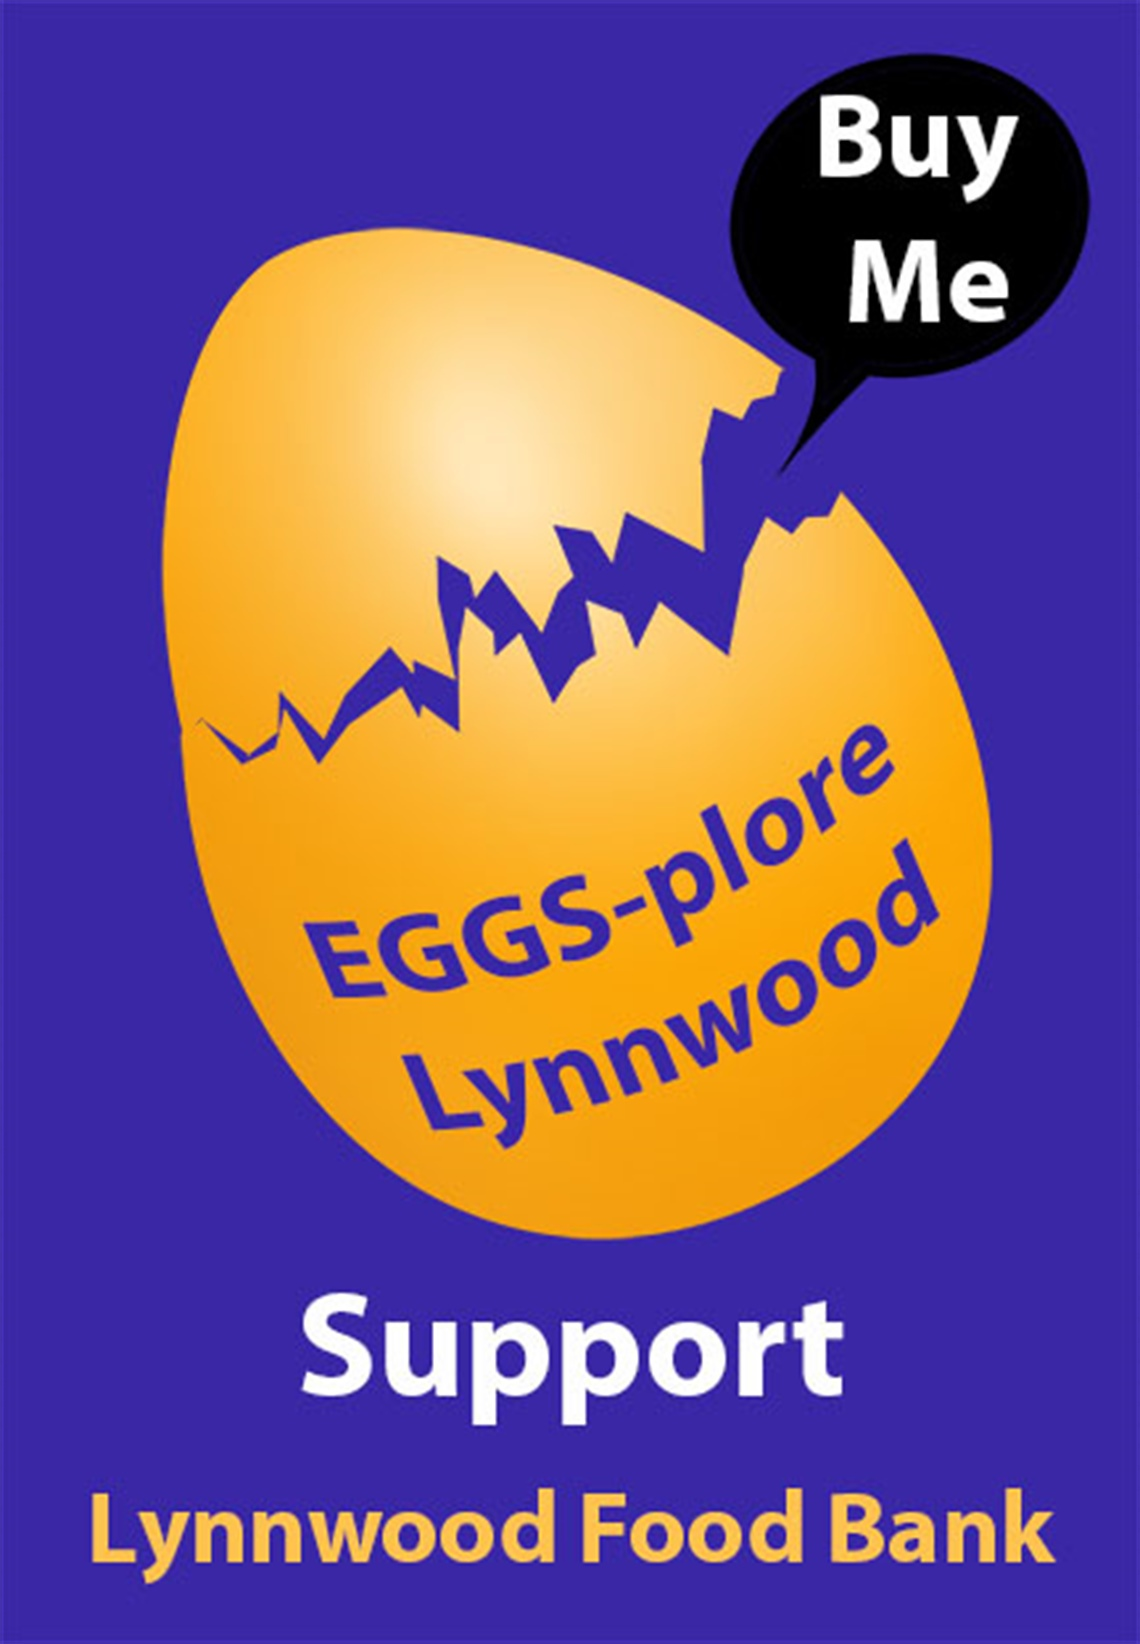 egg-auction-image.jpg